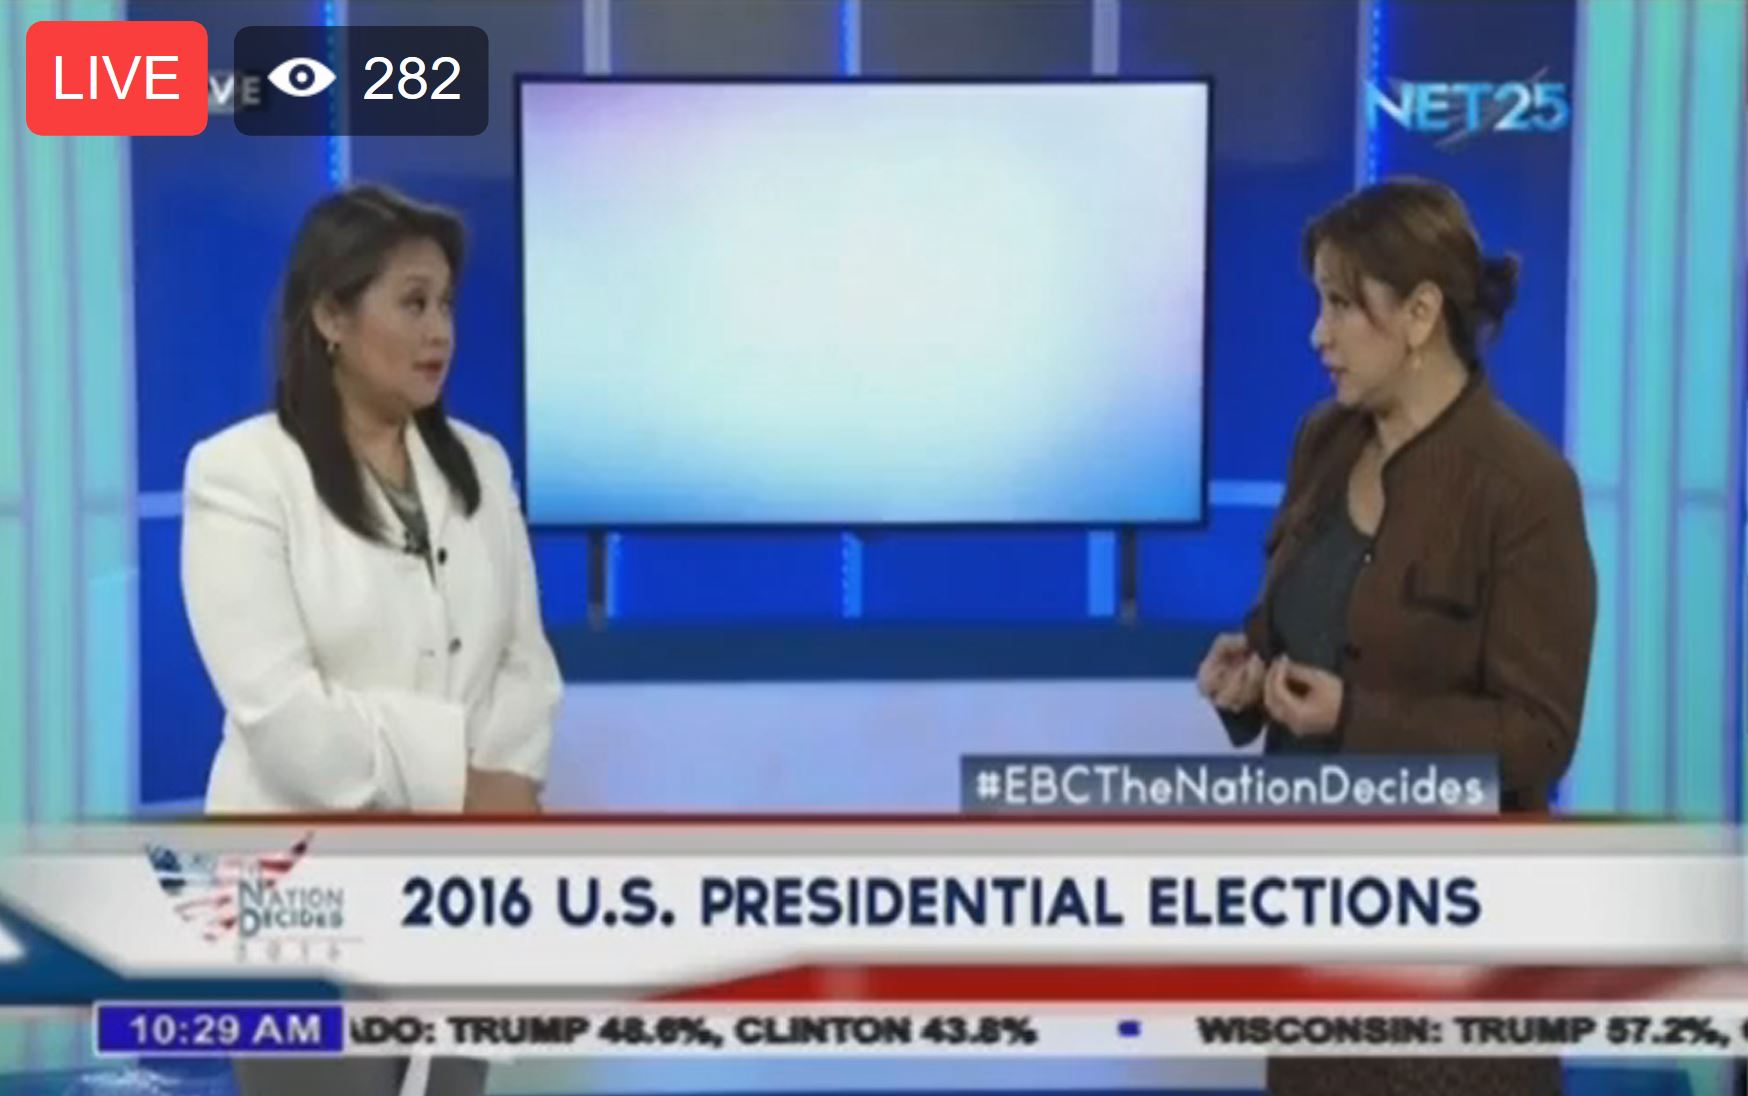 Eagle News Service anchors Alma Angeles and Ellaine Fuentes at the EBC main studio in Quezon City.